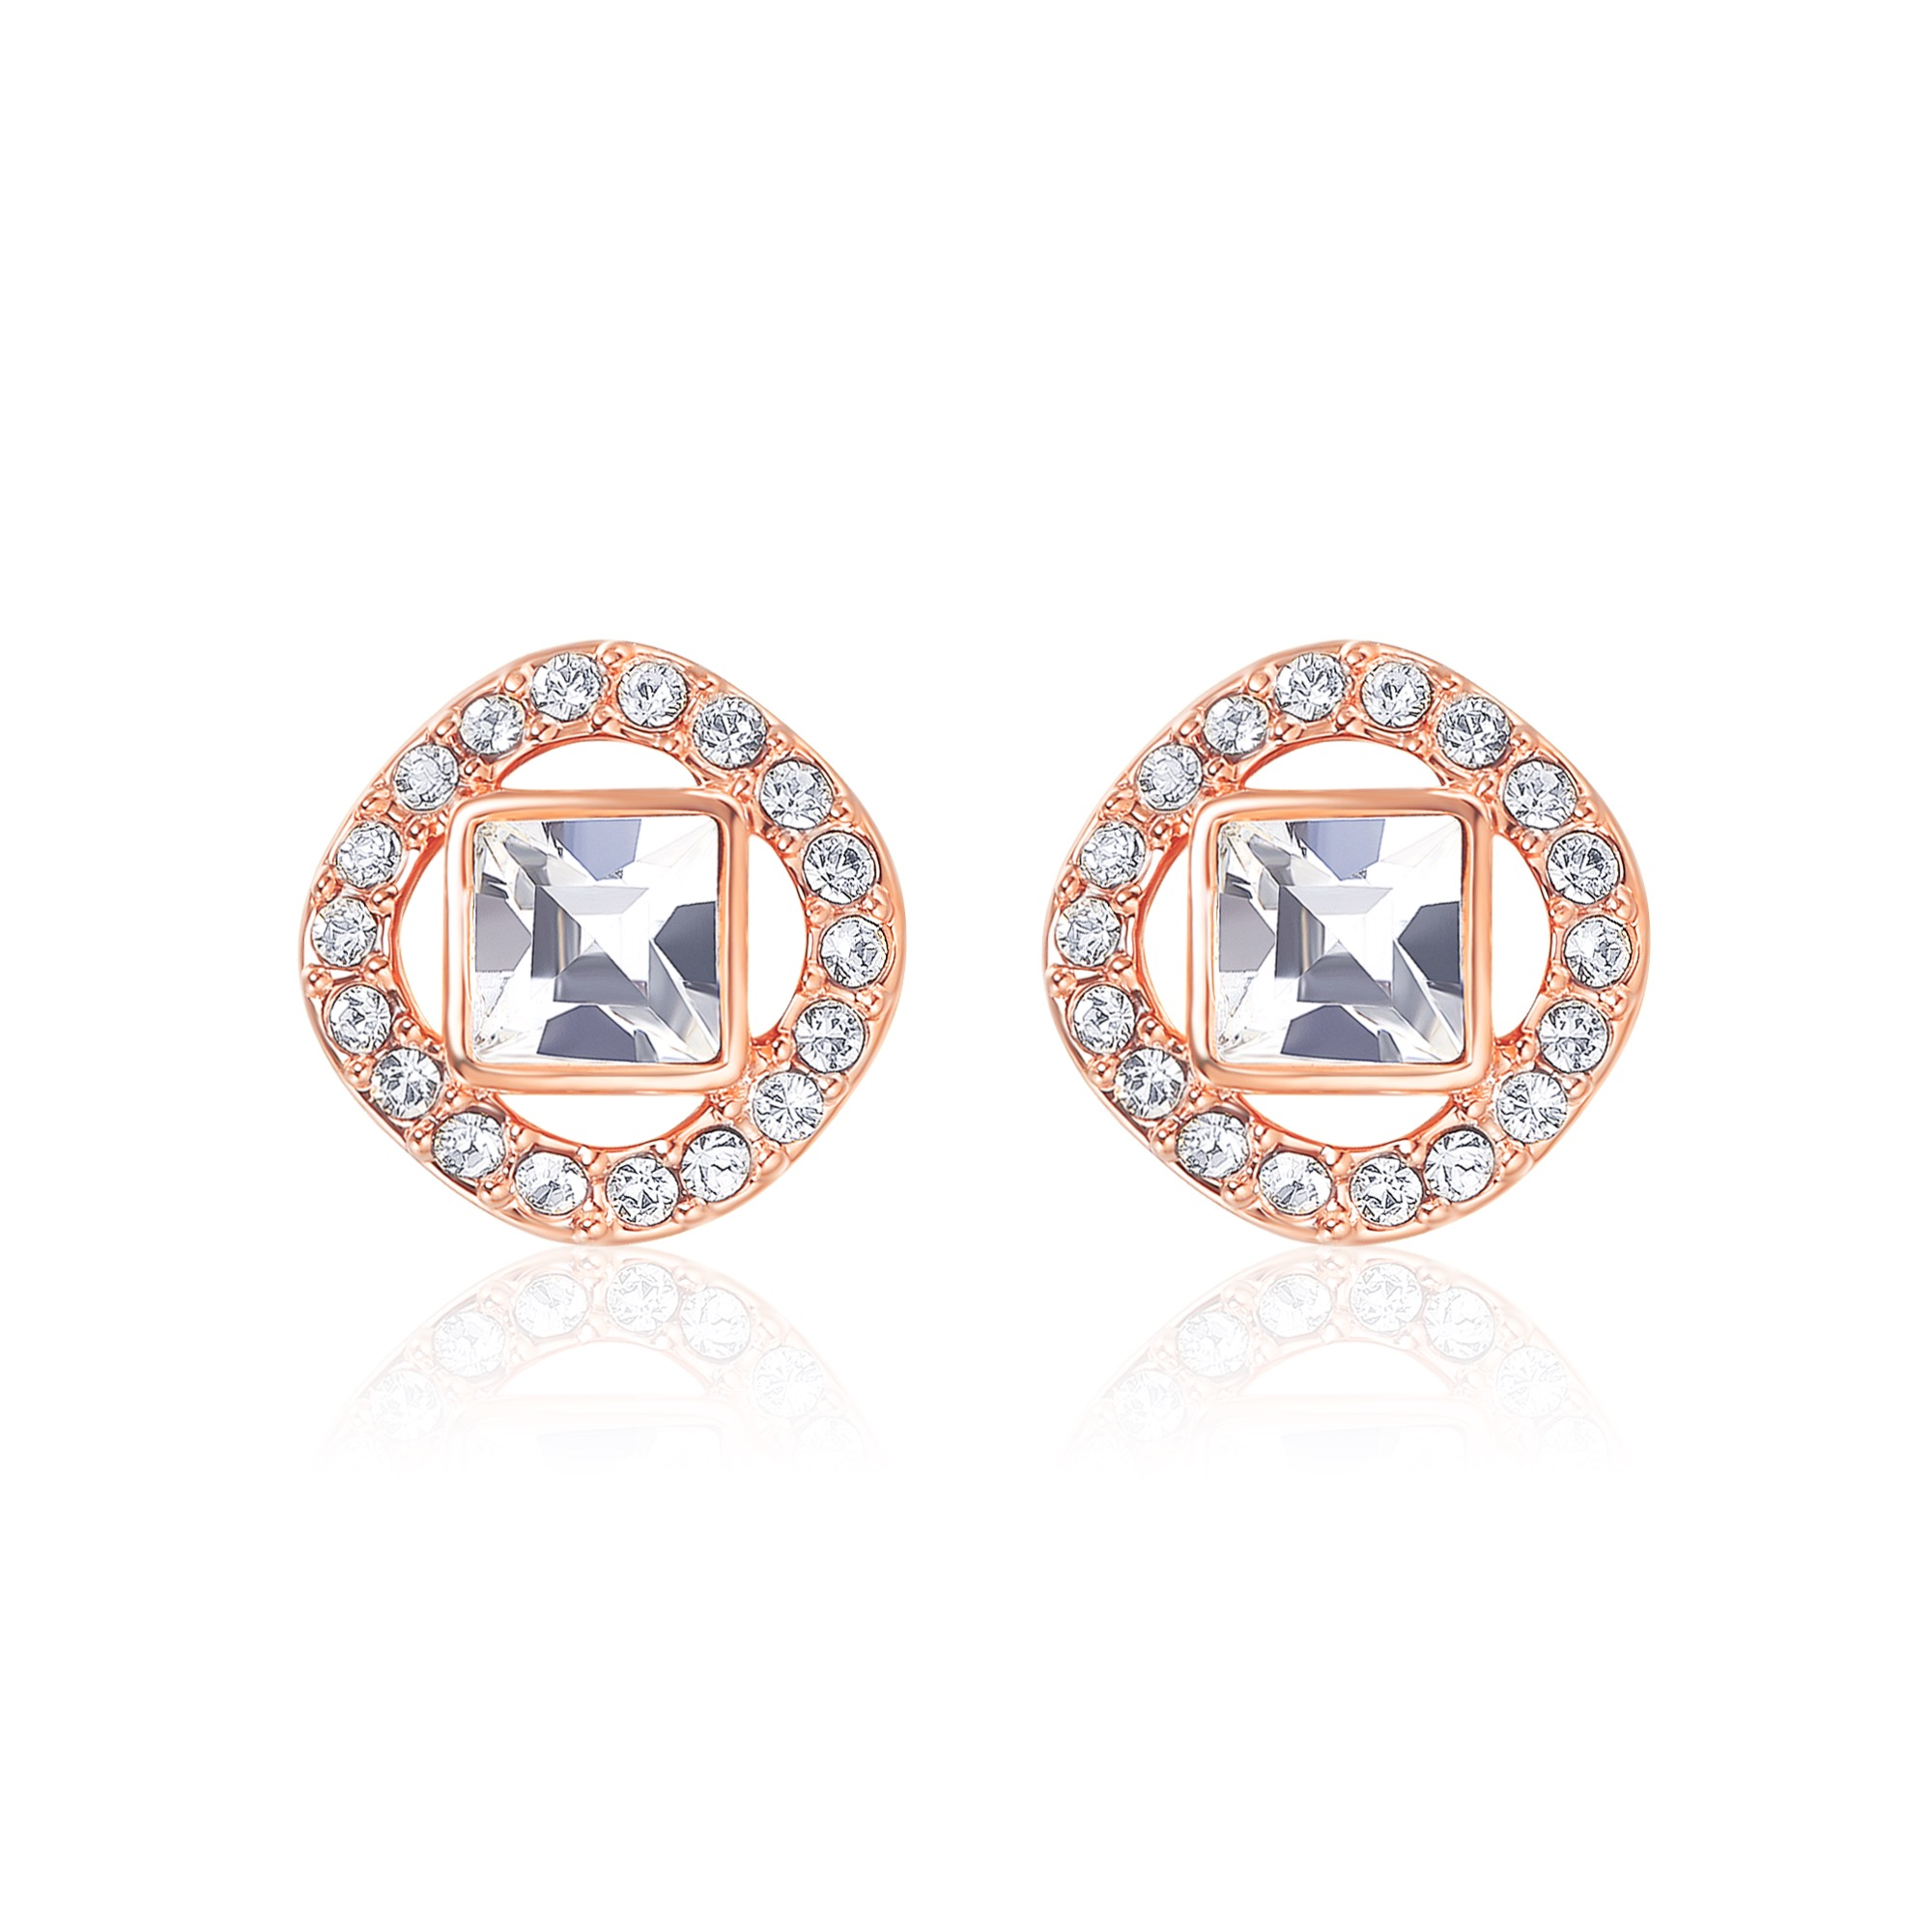 e79ed05c51e1f Details about Angelic Square Earrings with Swarovski Crystals Rose Gold  Plated MYJS